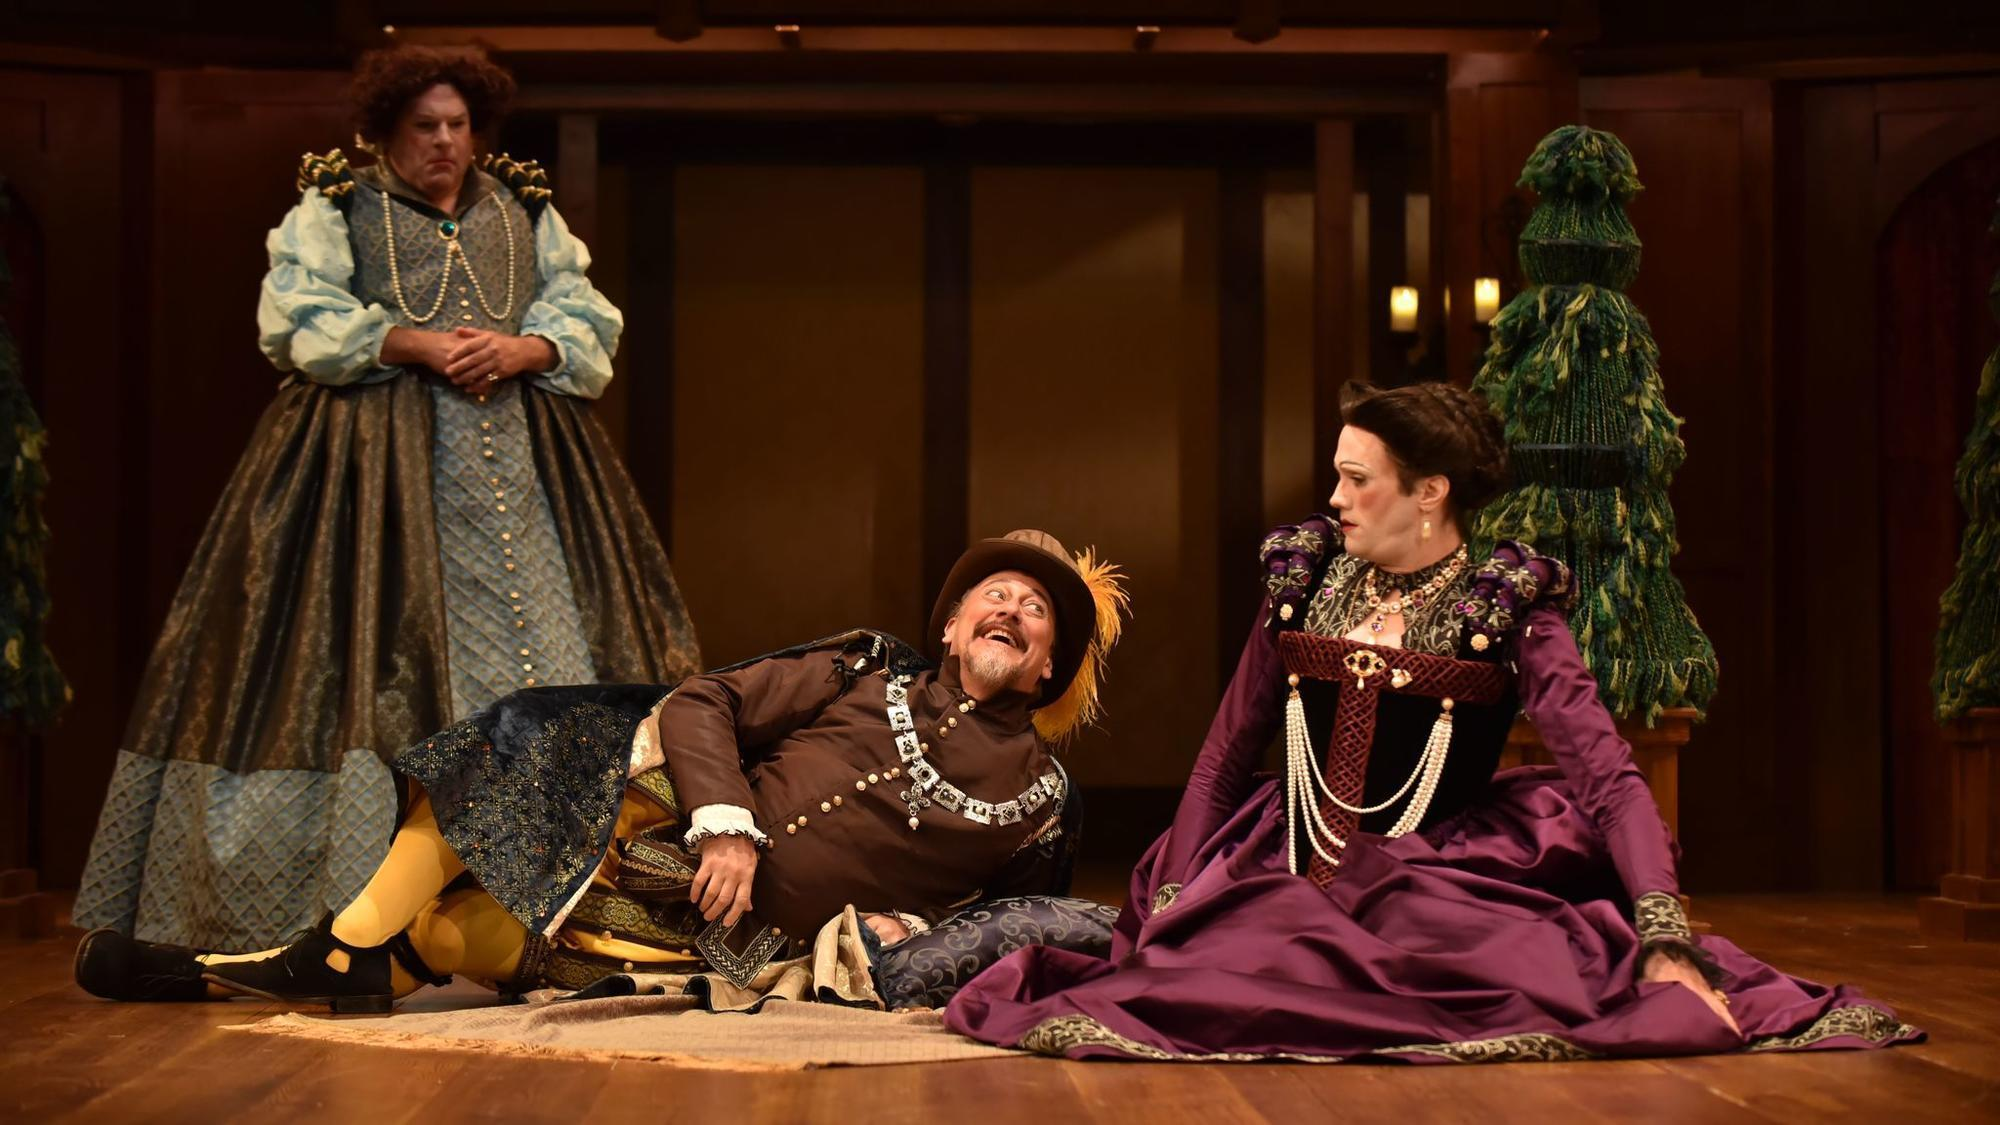 review twelfth night Twelfth night, or what you will is a comedy by william shakespeare, believed to have been written around 1601–02 as a twelfth night's entertainment for the close of the christmas season the play centres on the twins viola and sebastian, who are separated in a shipwreck.